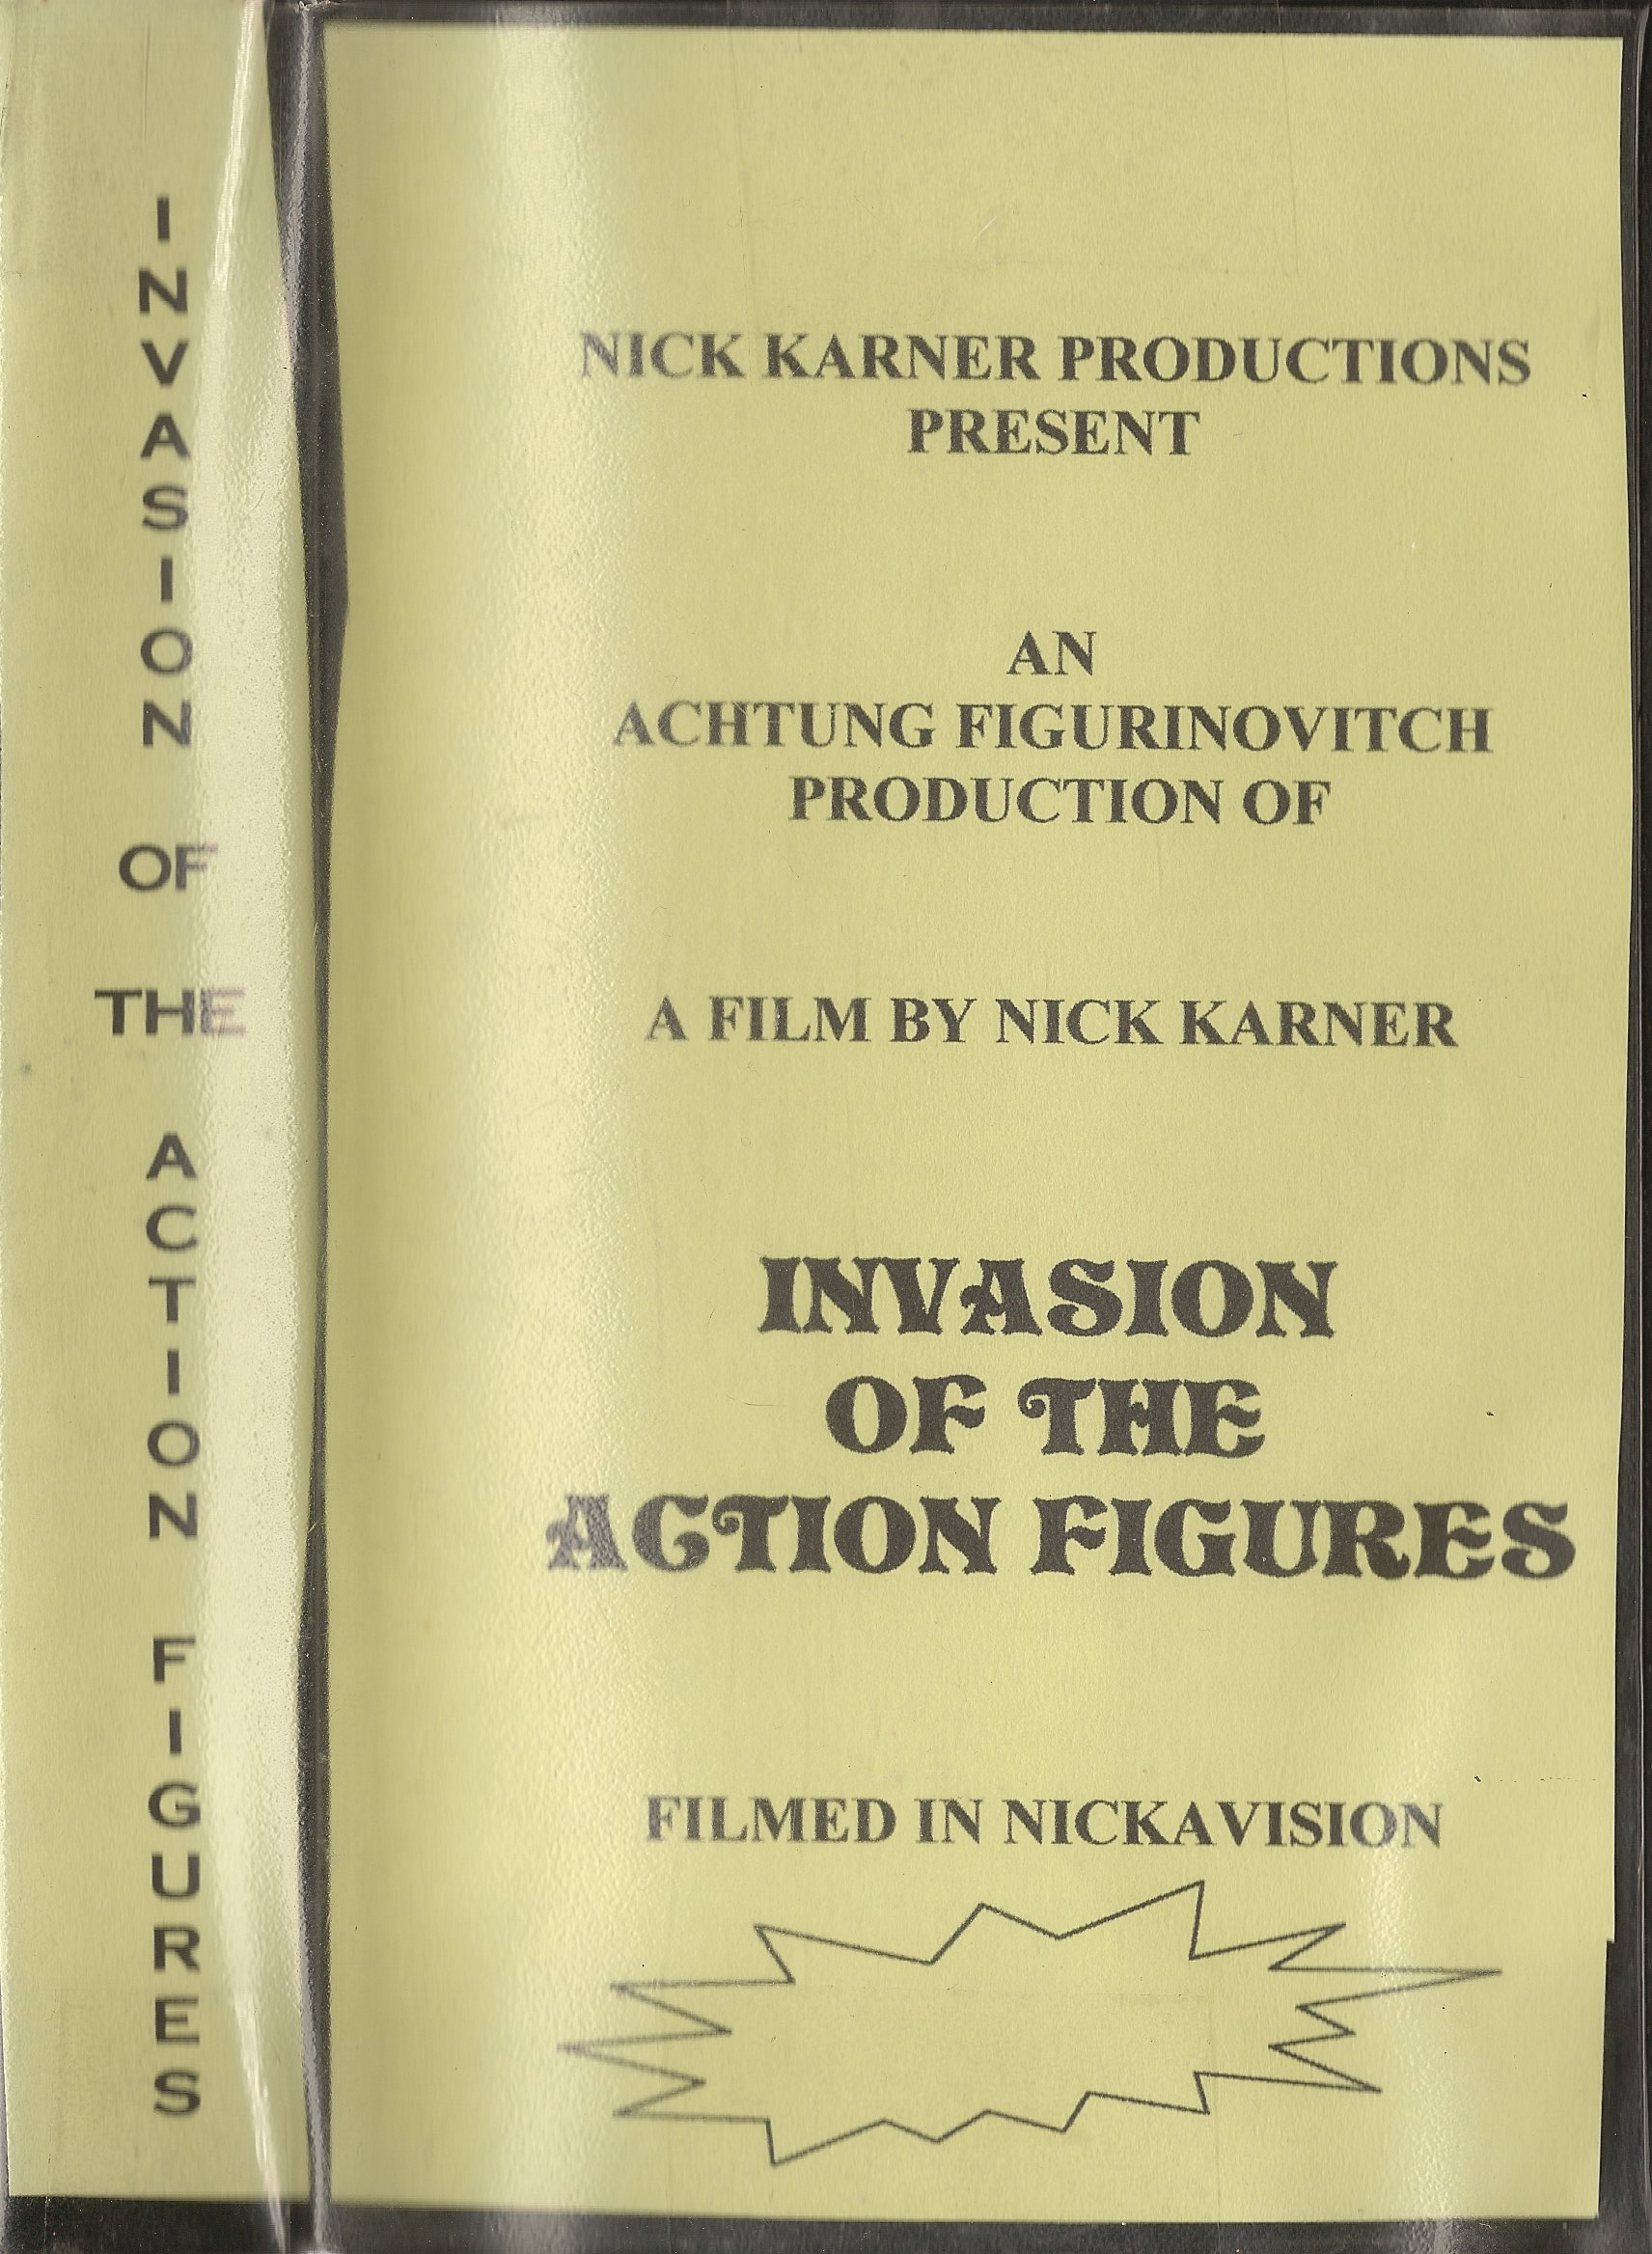 Invasion VHS Cover